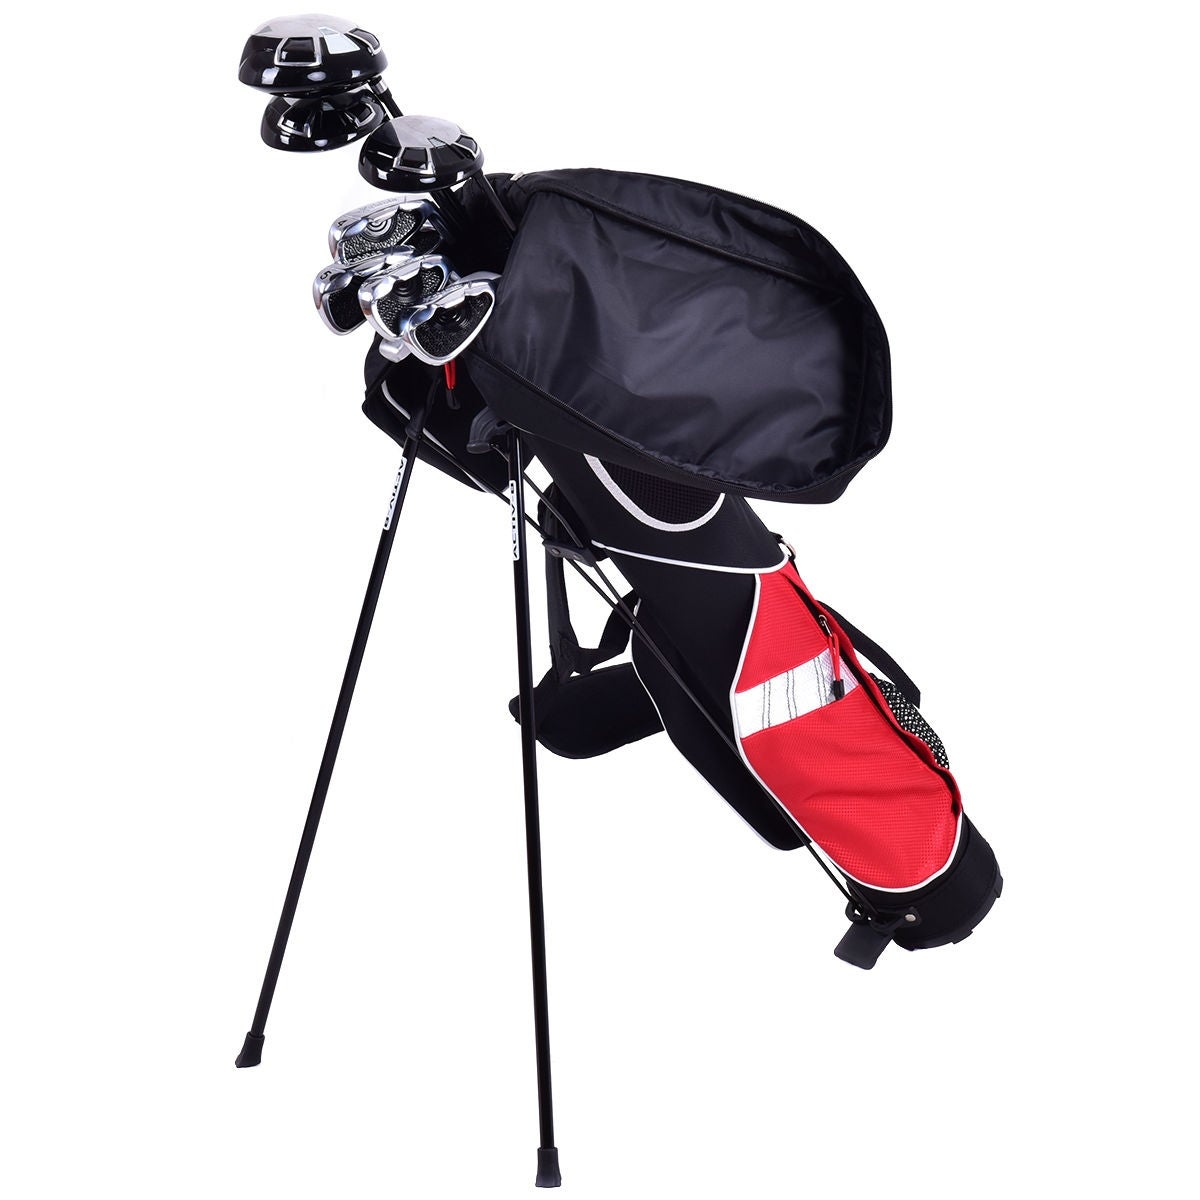 5 Sunday Golf Bag Stand 7 Clubs Carry Pockets Travel Storage Lightweight As Pic On Free Shipping Today 16680230